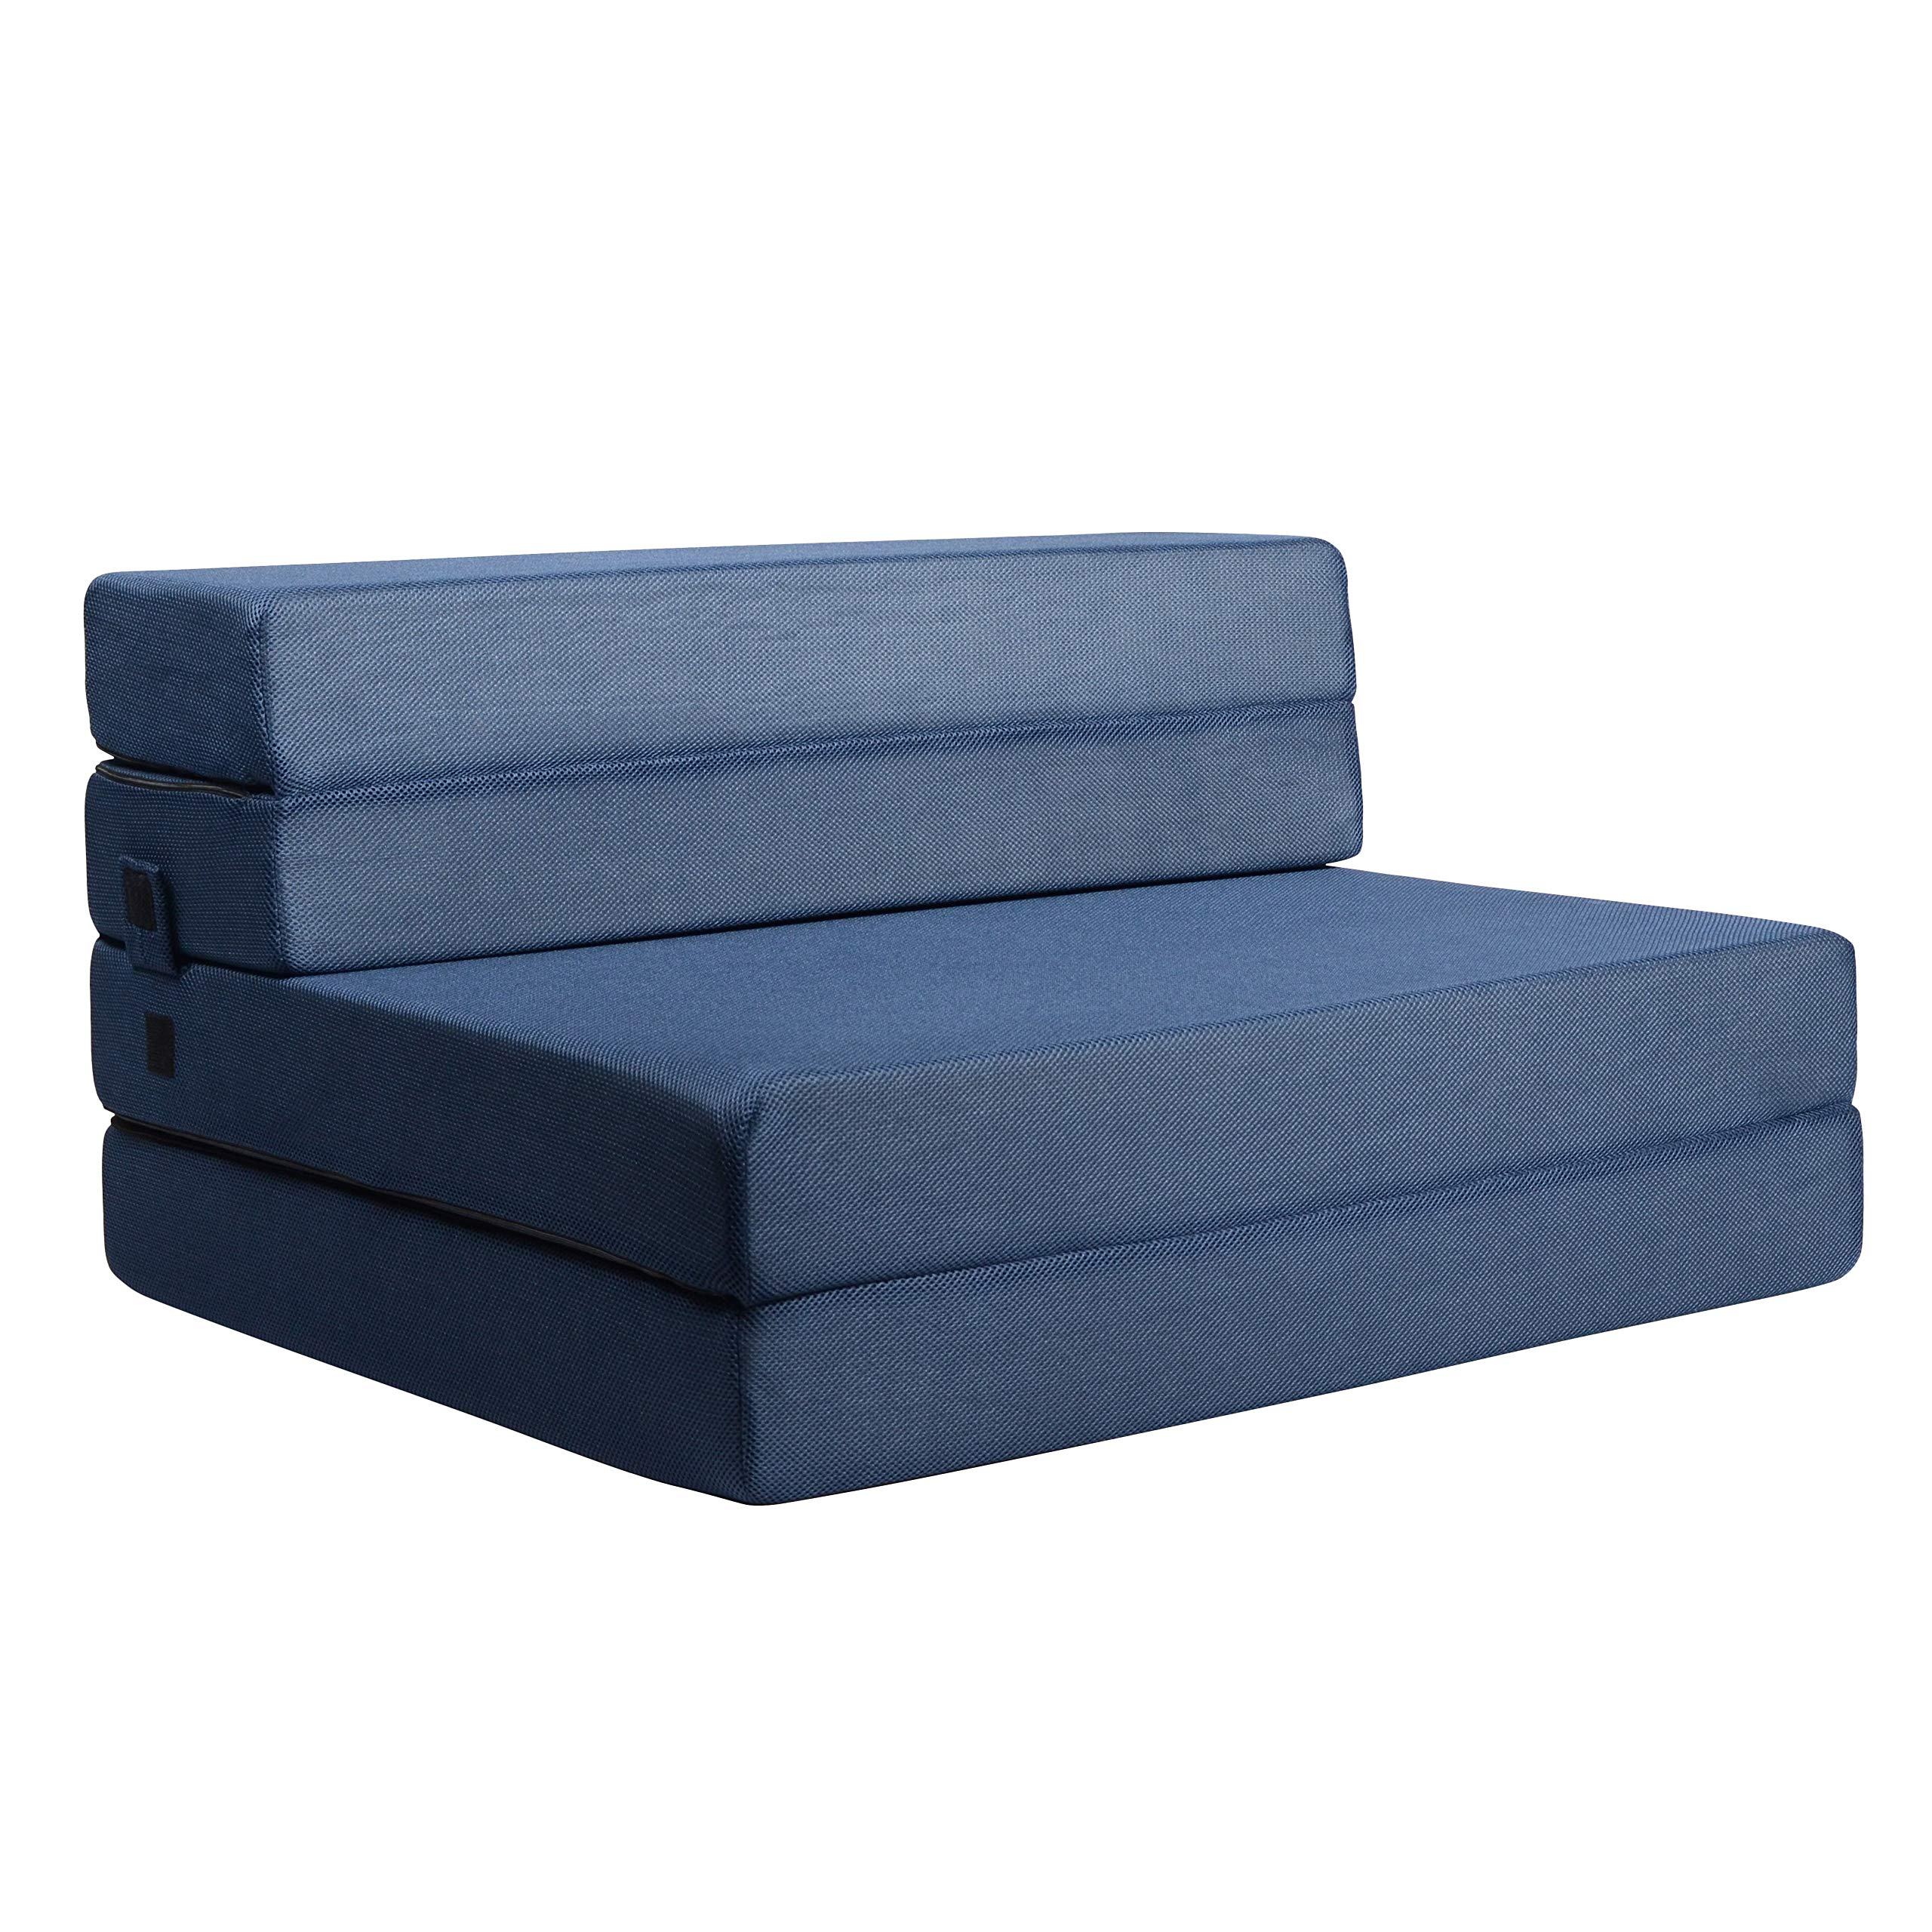 Milliard Tri-Fold Foam Folding Mattress and Sofa Bed for Guests or Floor Mat - Twin XL 78x38x4.5 Inch by Milliard